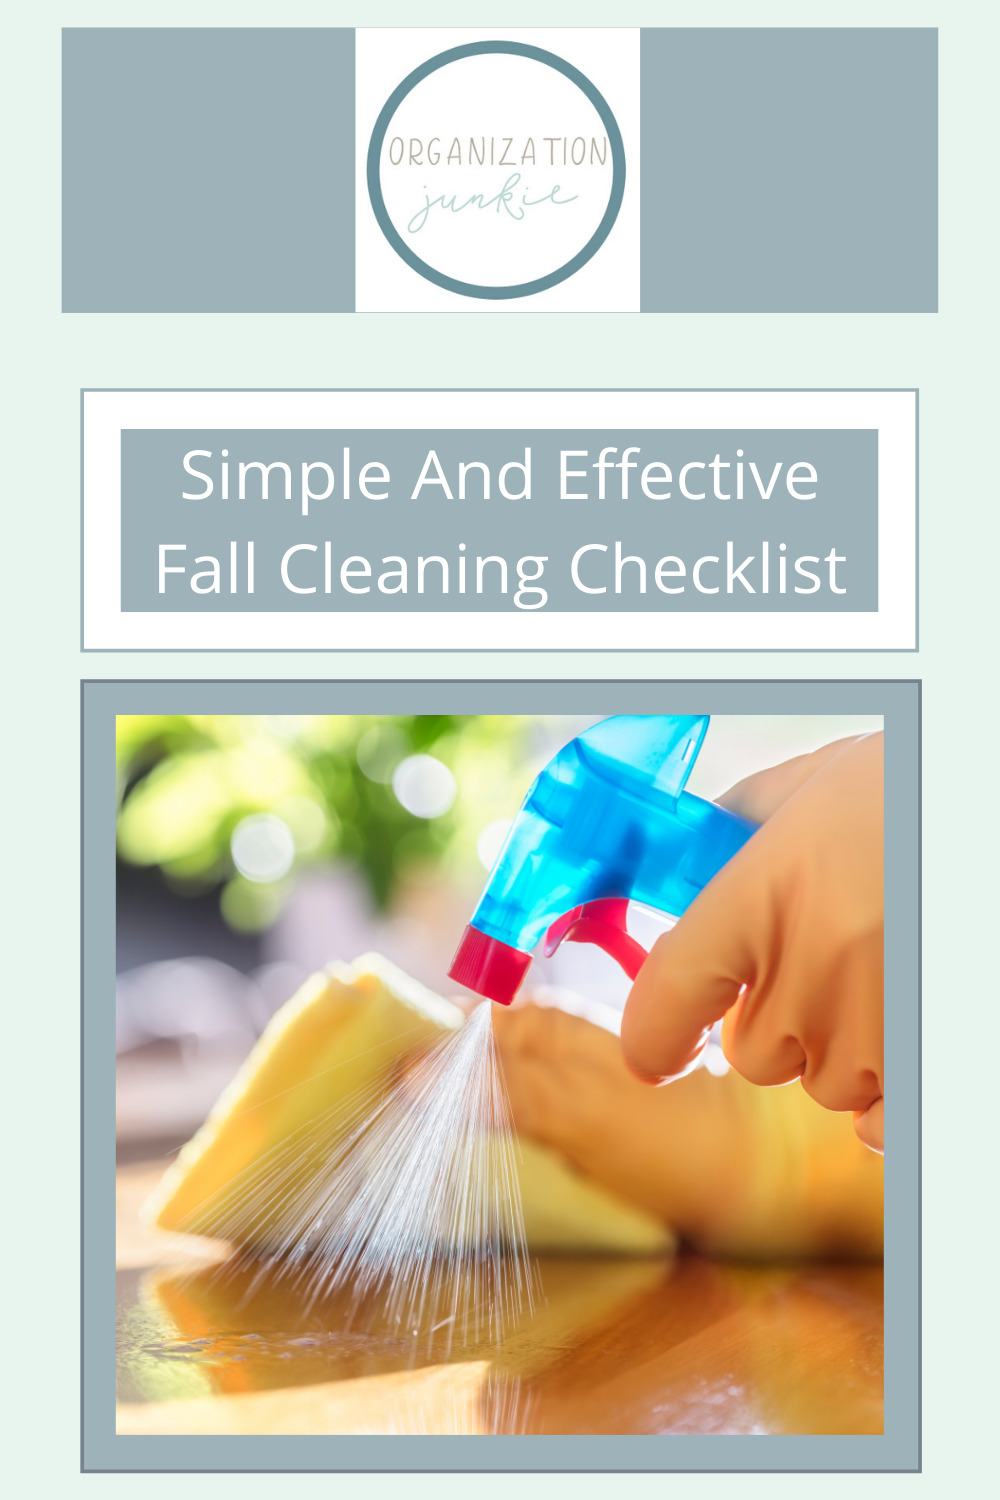 Organizationjunkie.com is stacked with creative ideas for keeping a clean and organized space. Find out how you can wipe out clutter in an instant. This checklist will make your fall cleaning an absolute breeze!